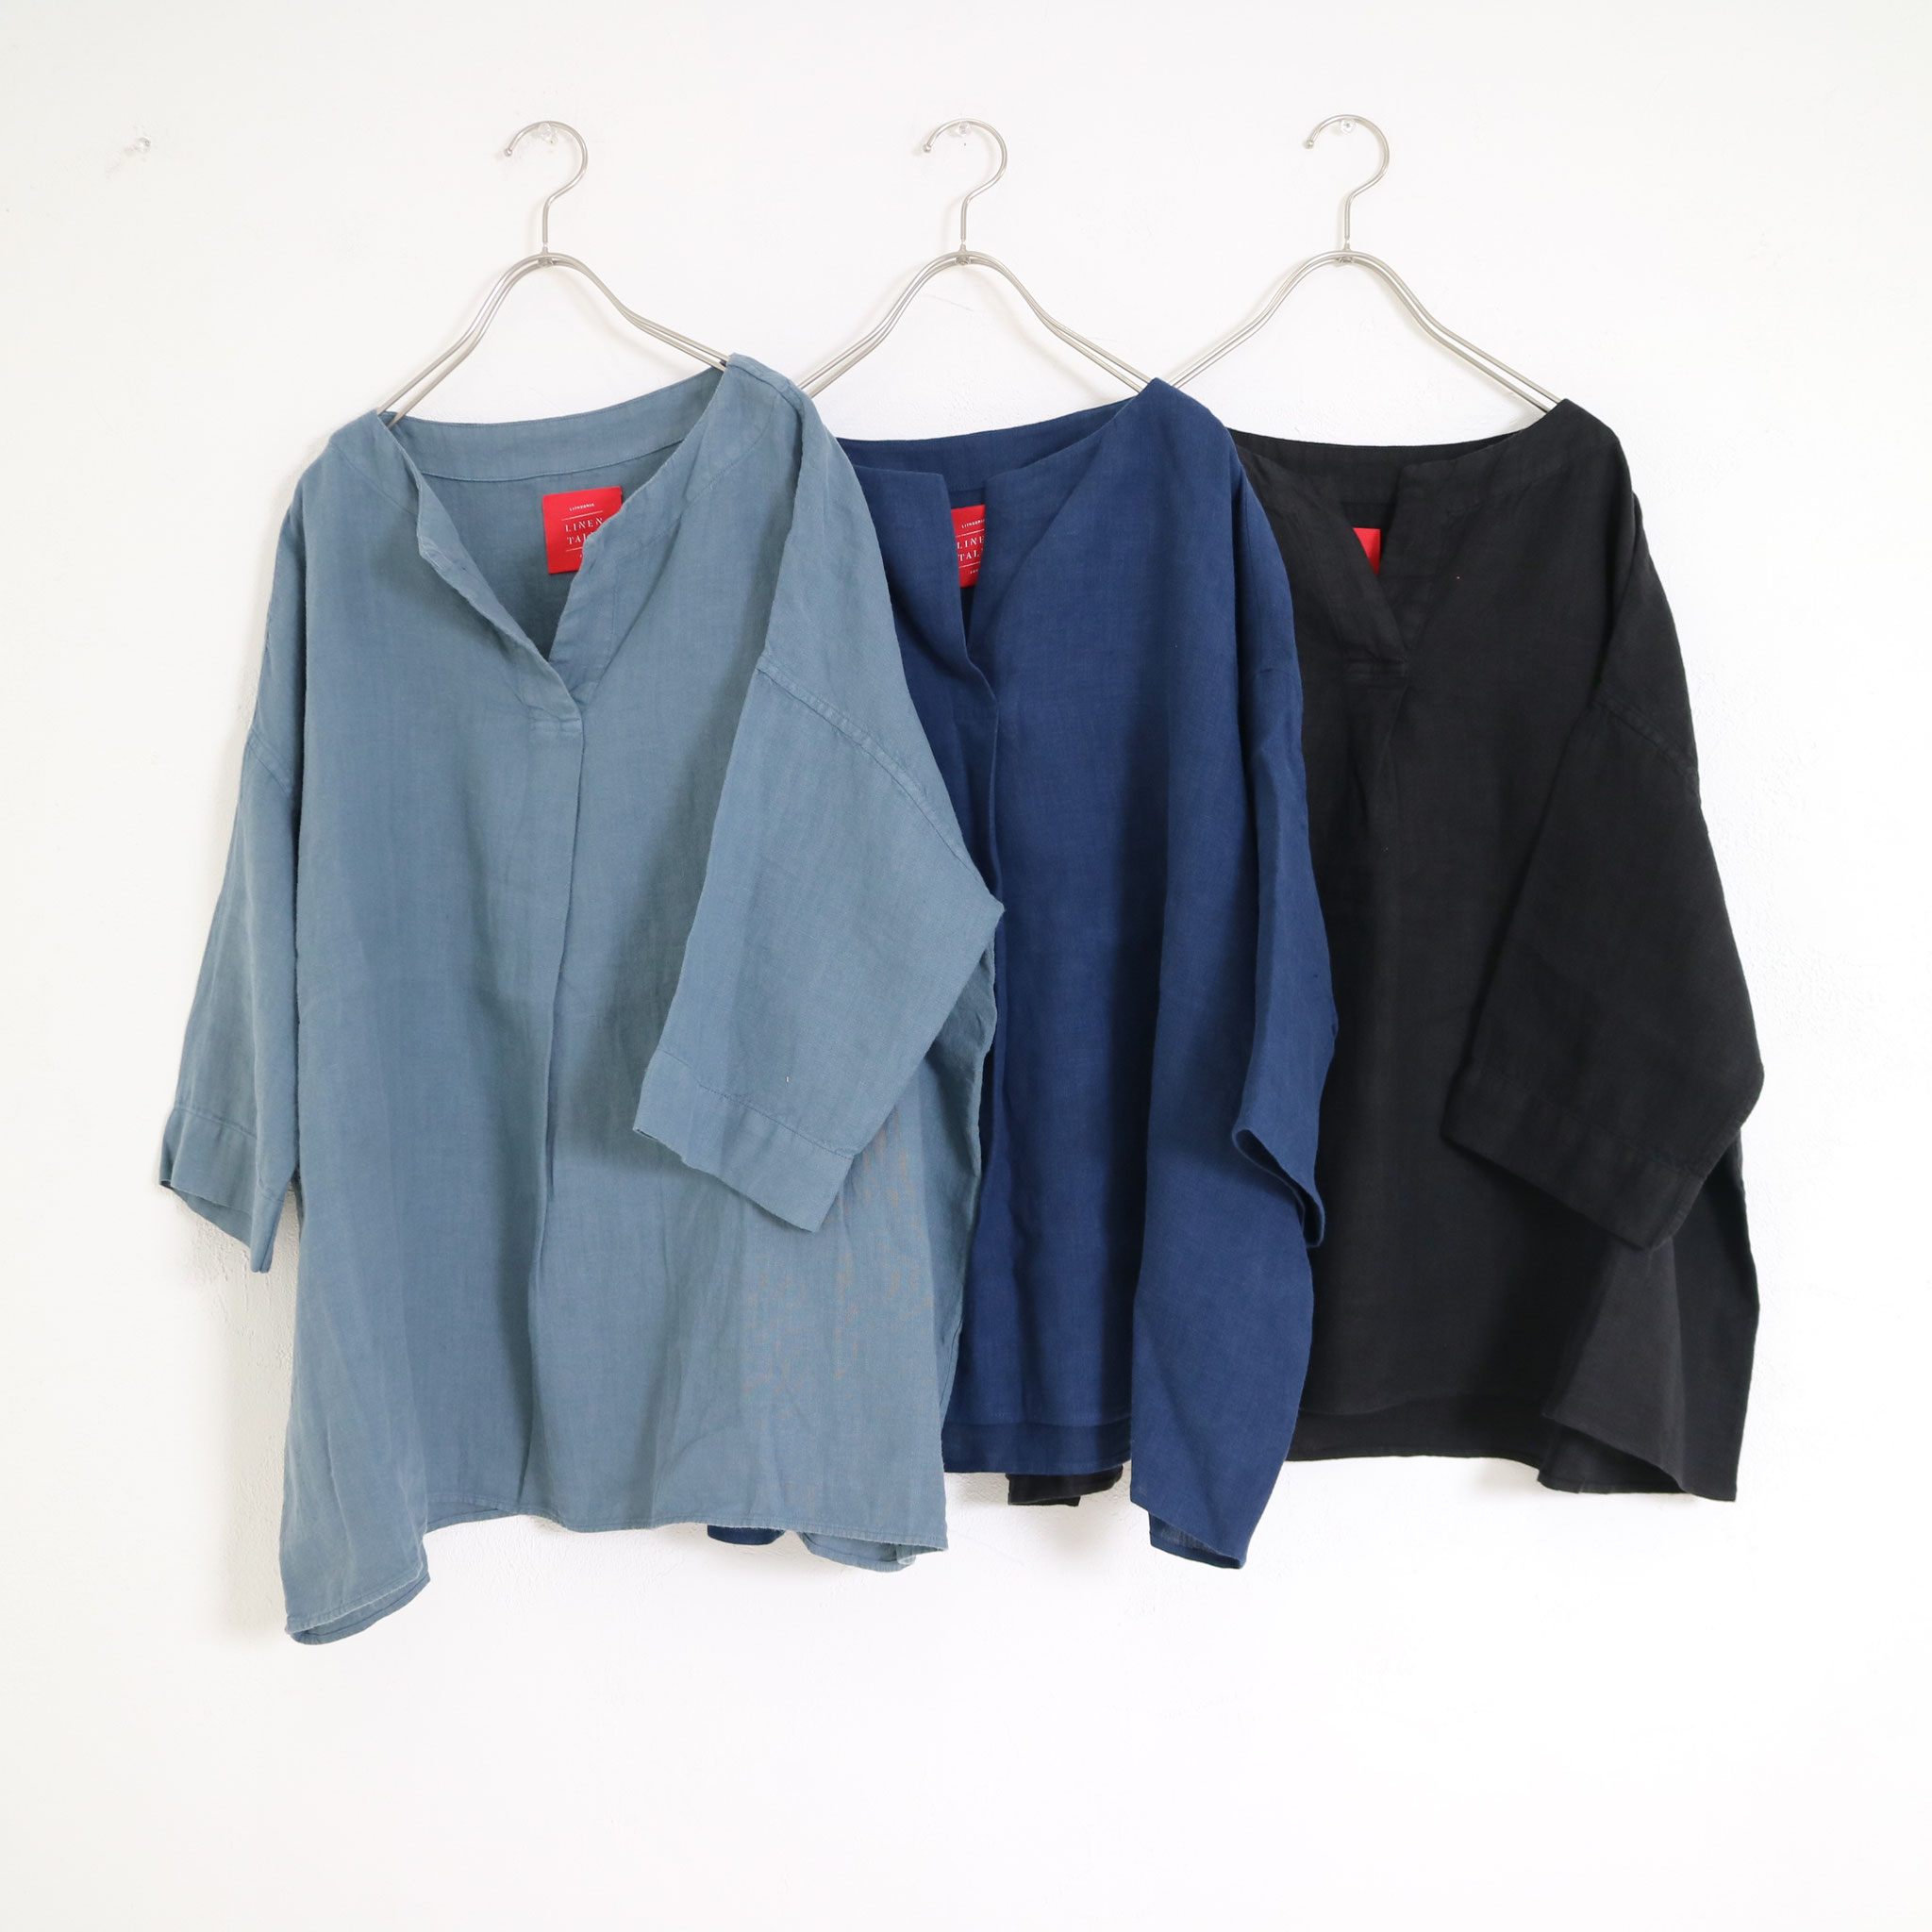 Vulcanic grass→ Navy→ Black